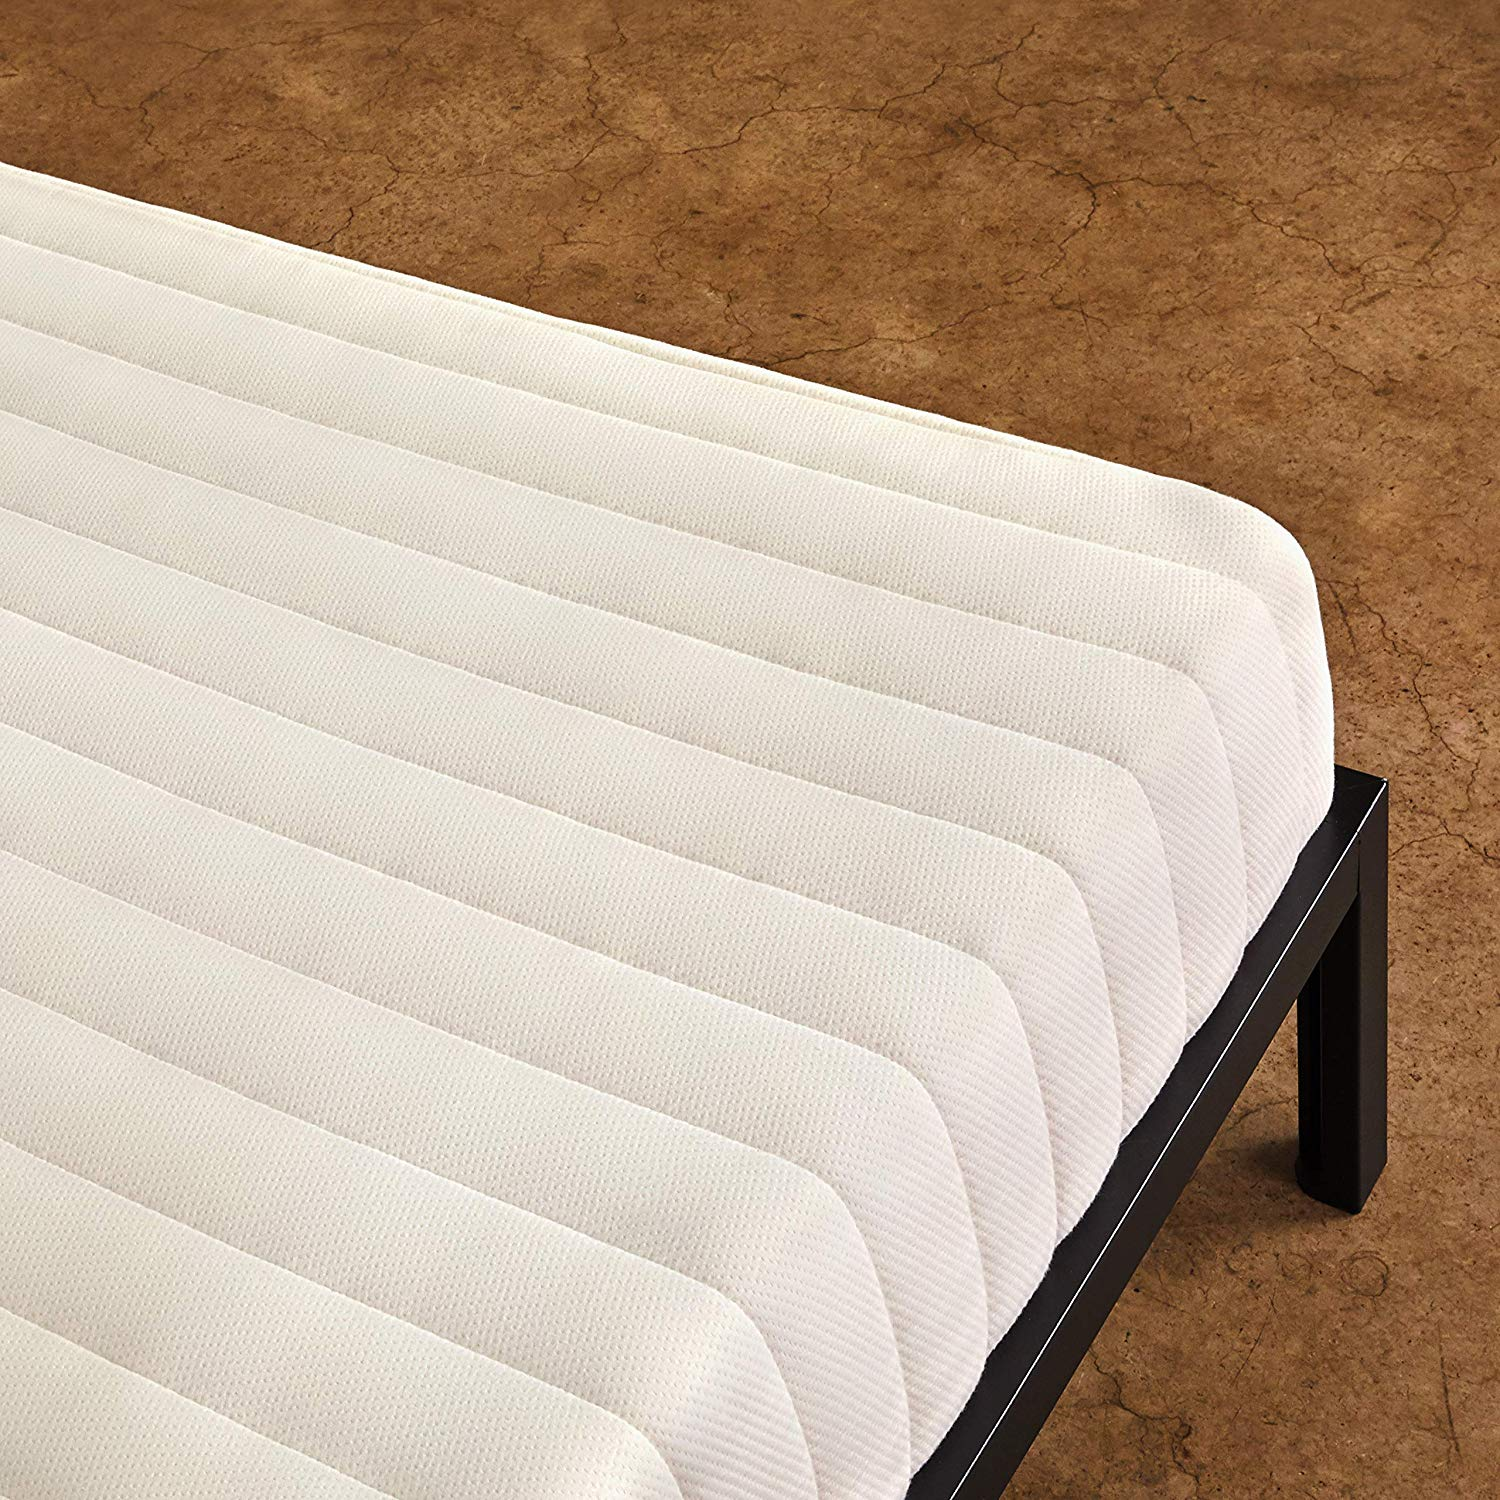 Pure GreenOrthopedic Mattress Review by www.snoremagazine.com